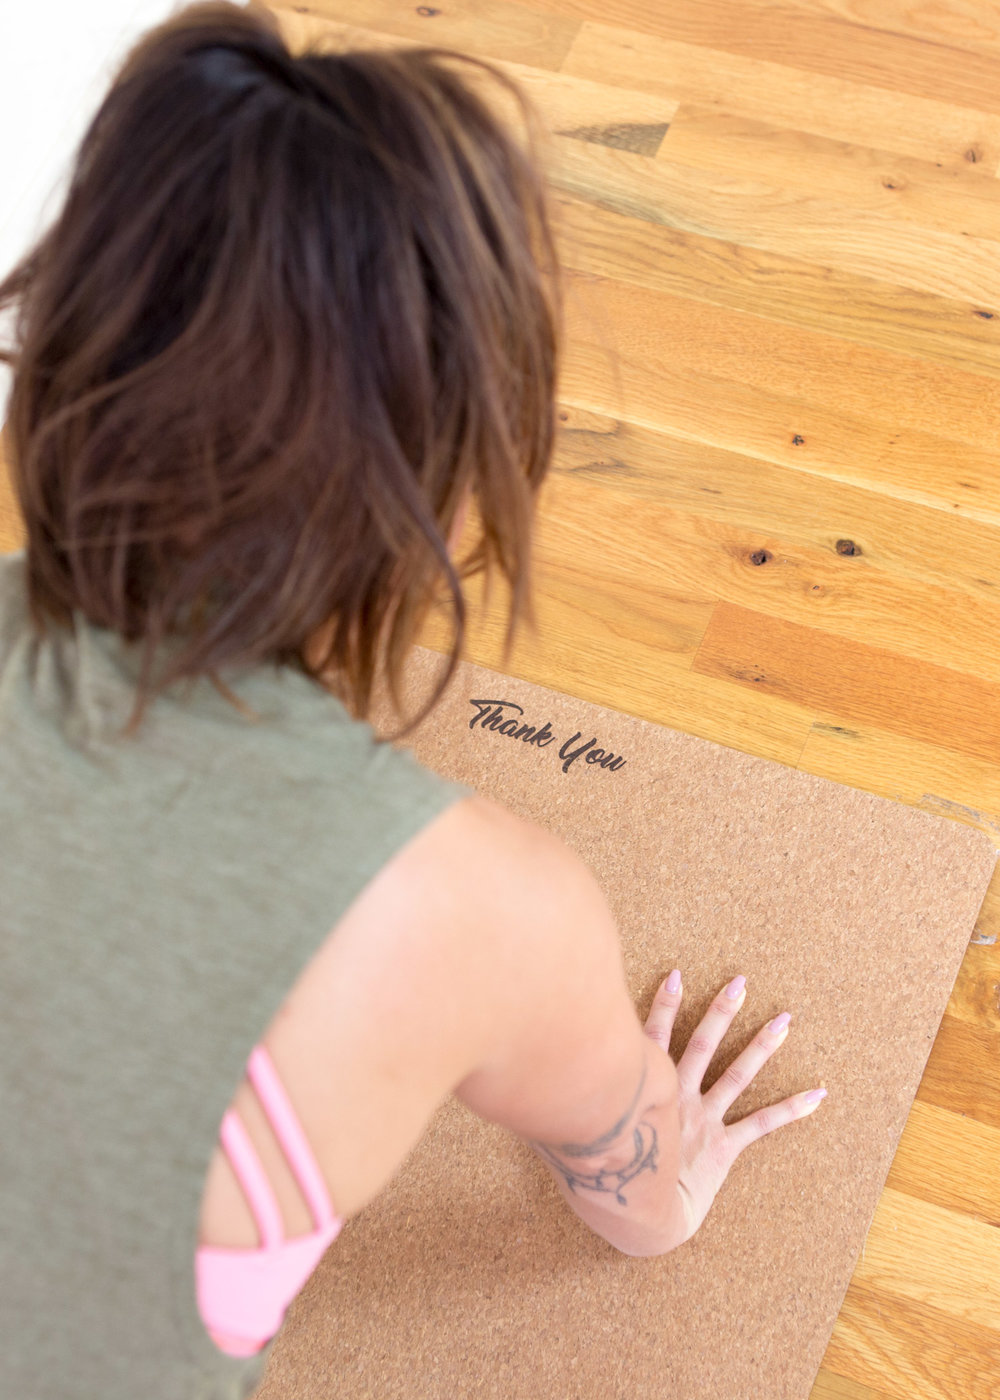 On my Mantra Dog Mat, a customized mat with your mantra (I chose Thank You, which reminds me to stay grateful)